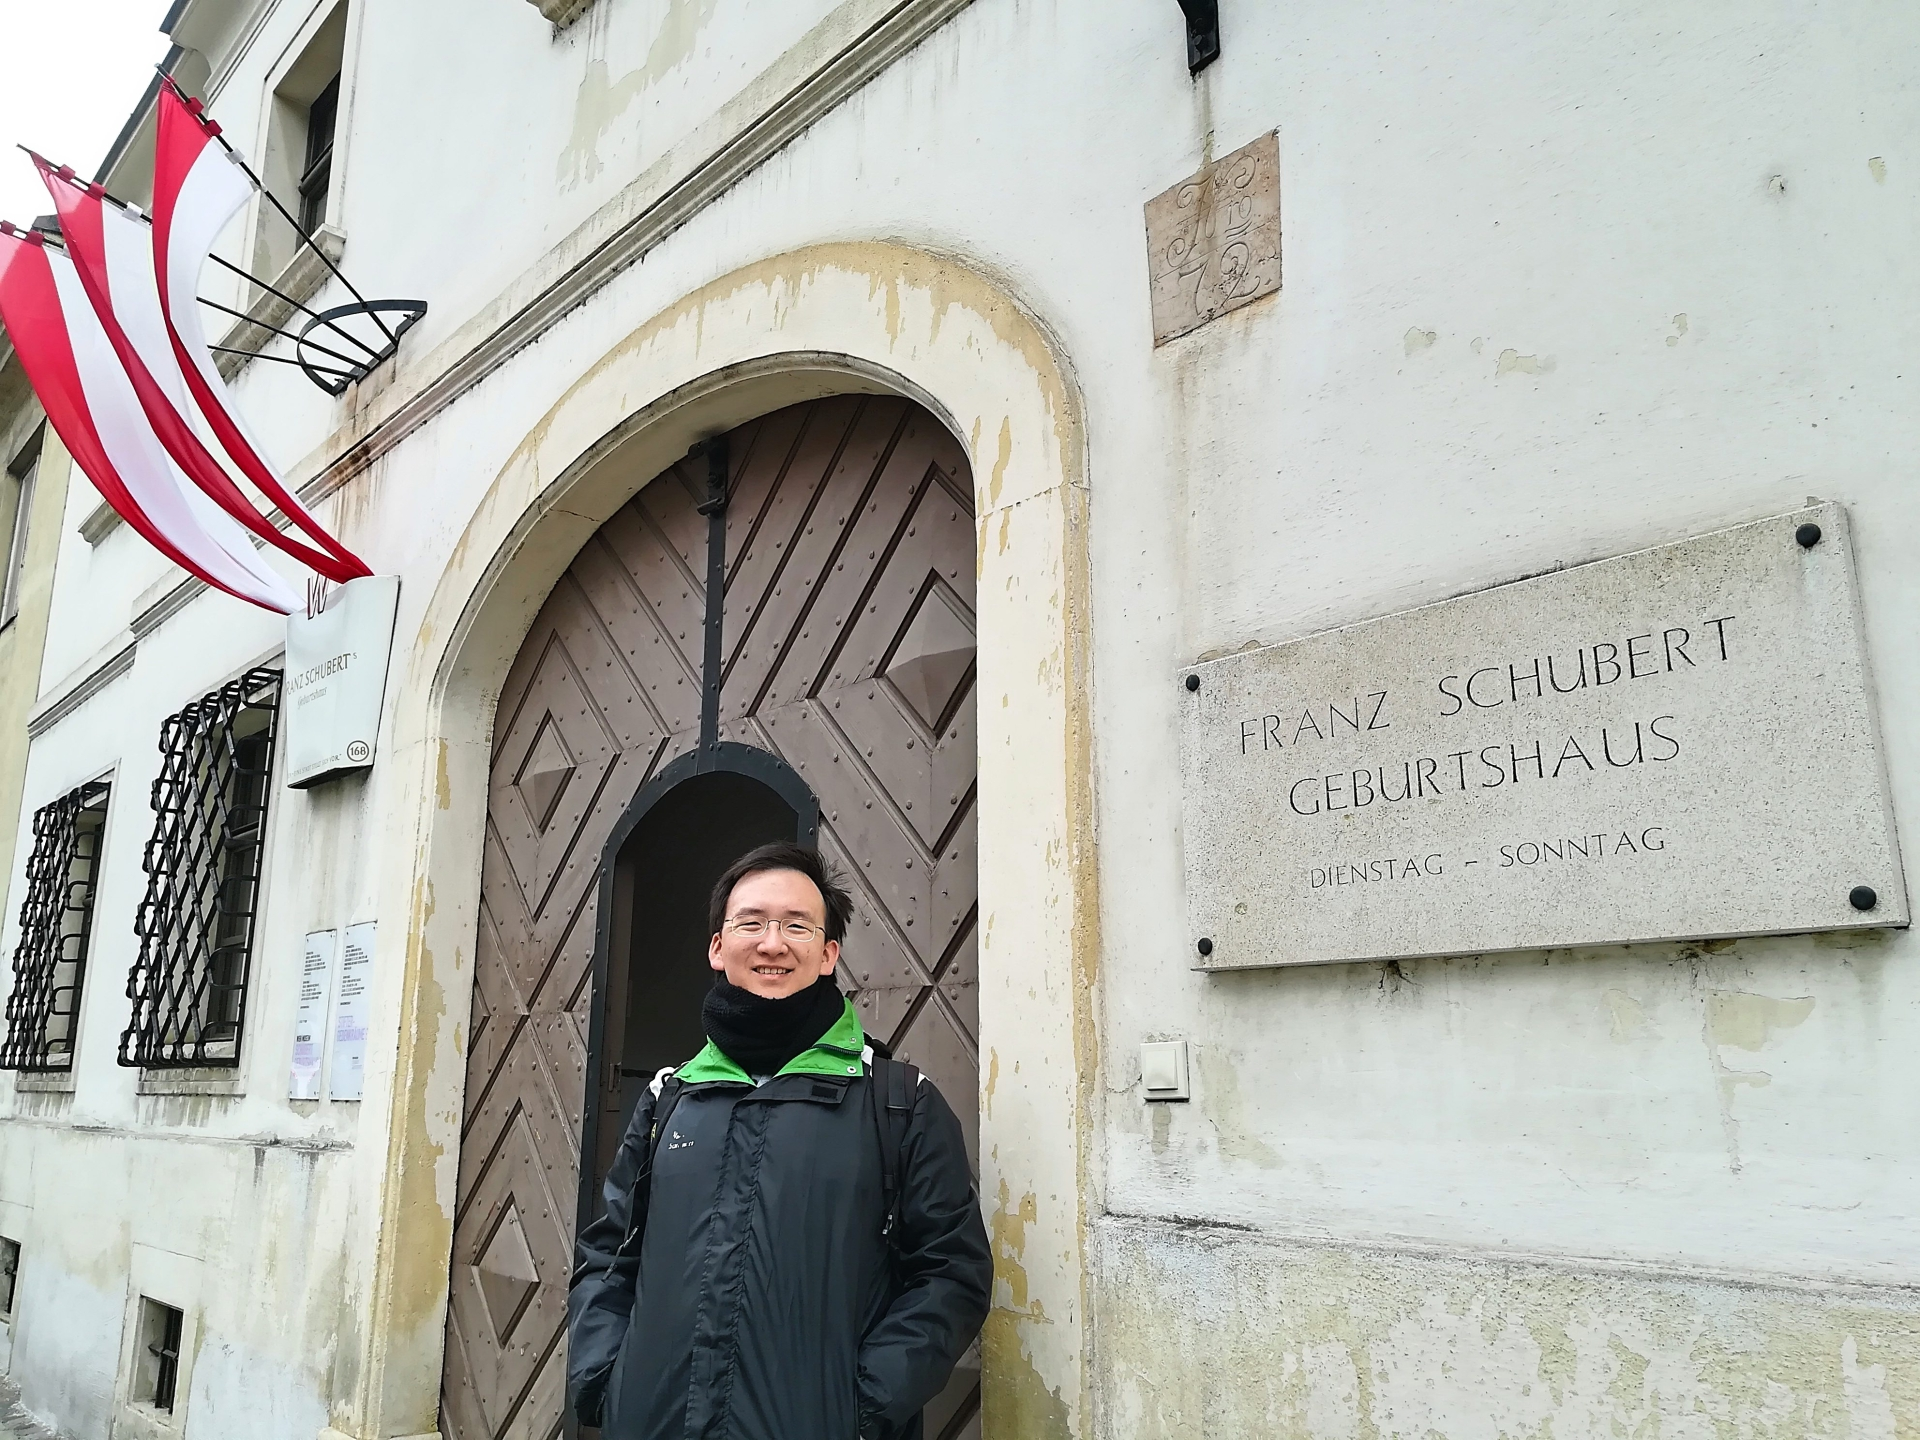 Phang at Austrian composer Franz Schubert's birth house in Vienna, Austria, in March this year. — PHANG LEE JOAN